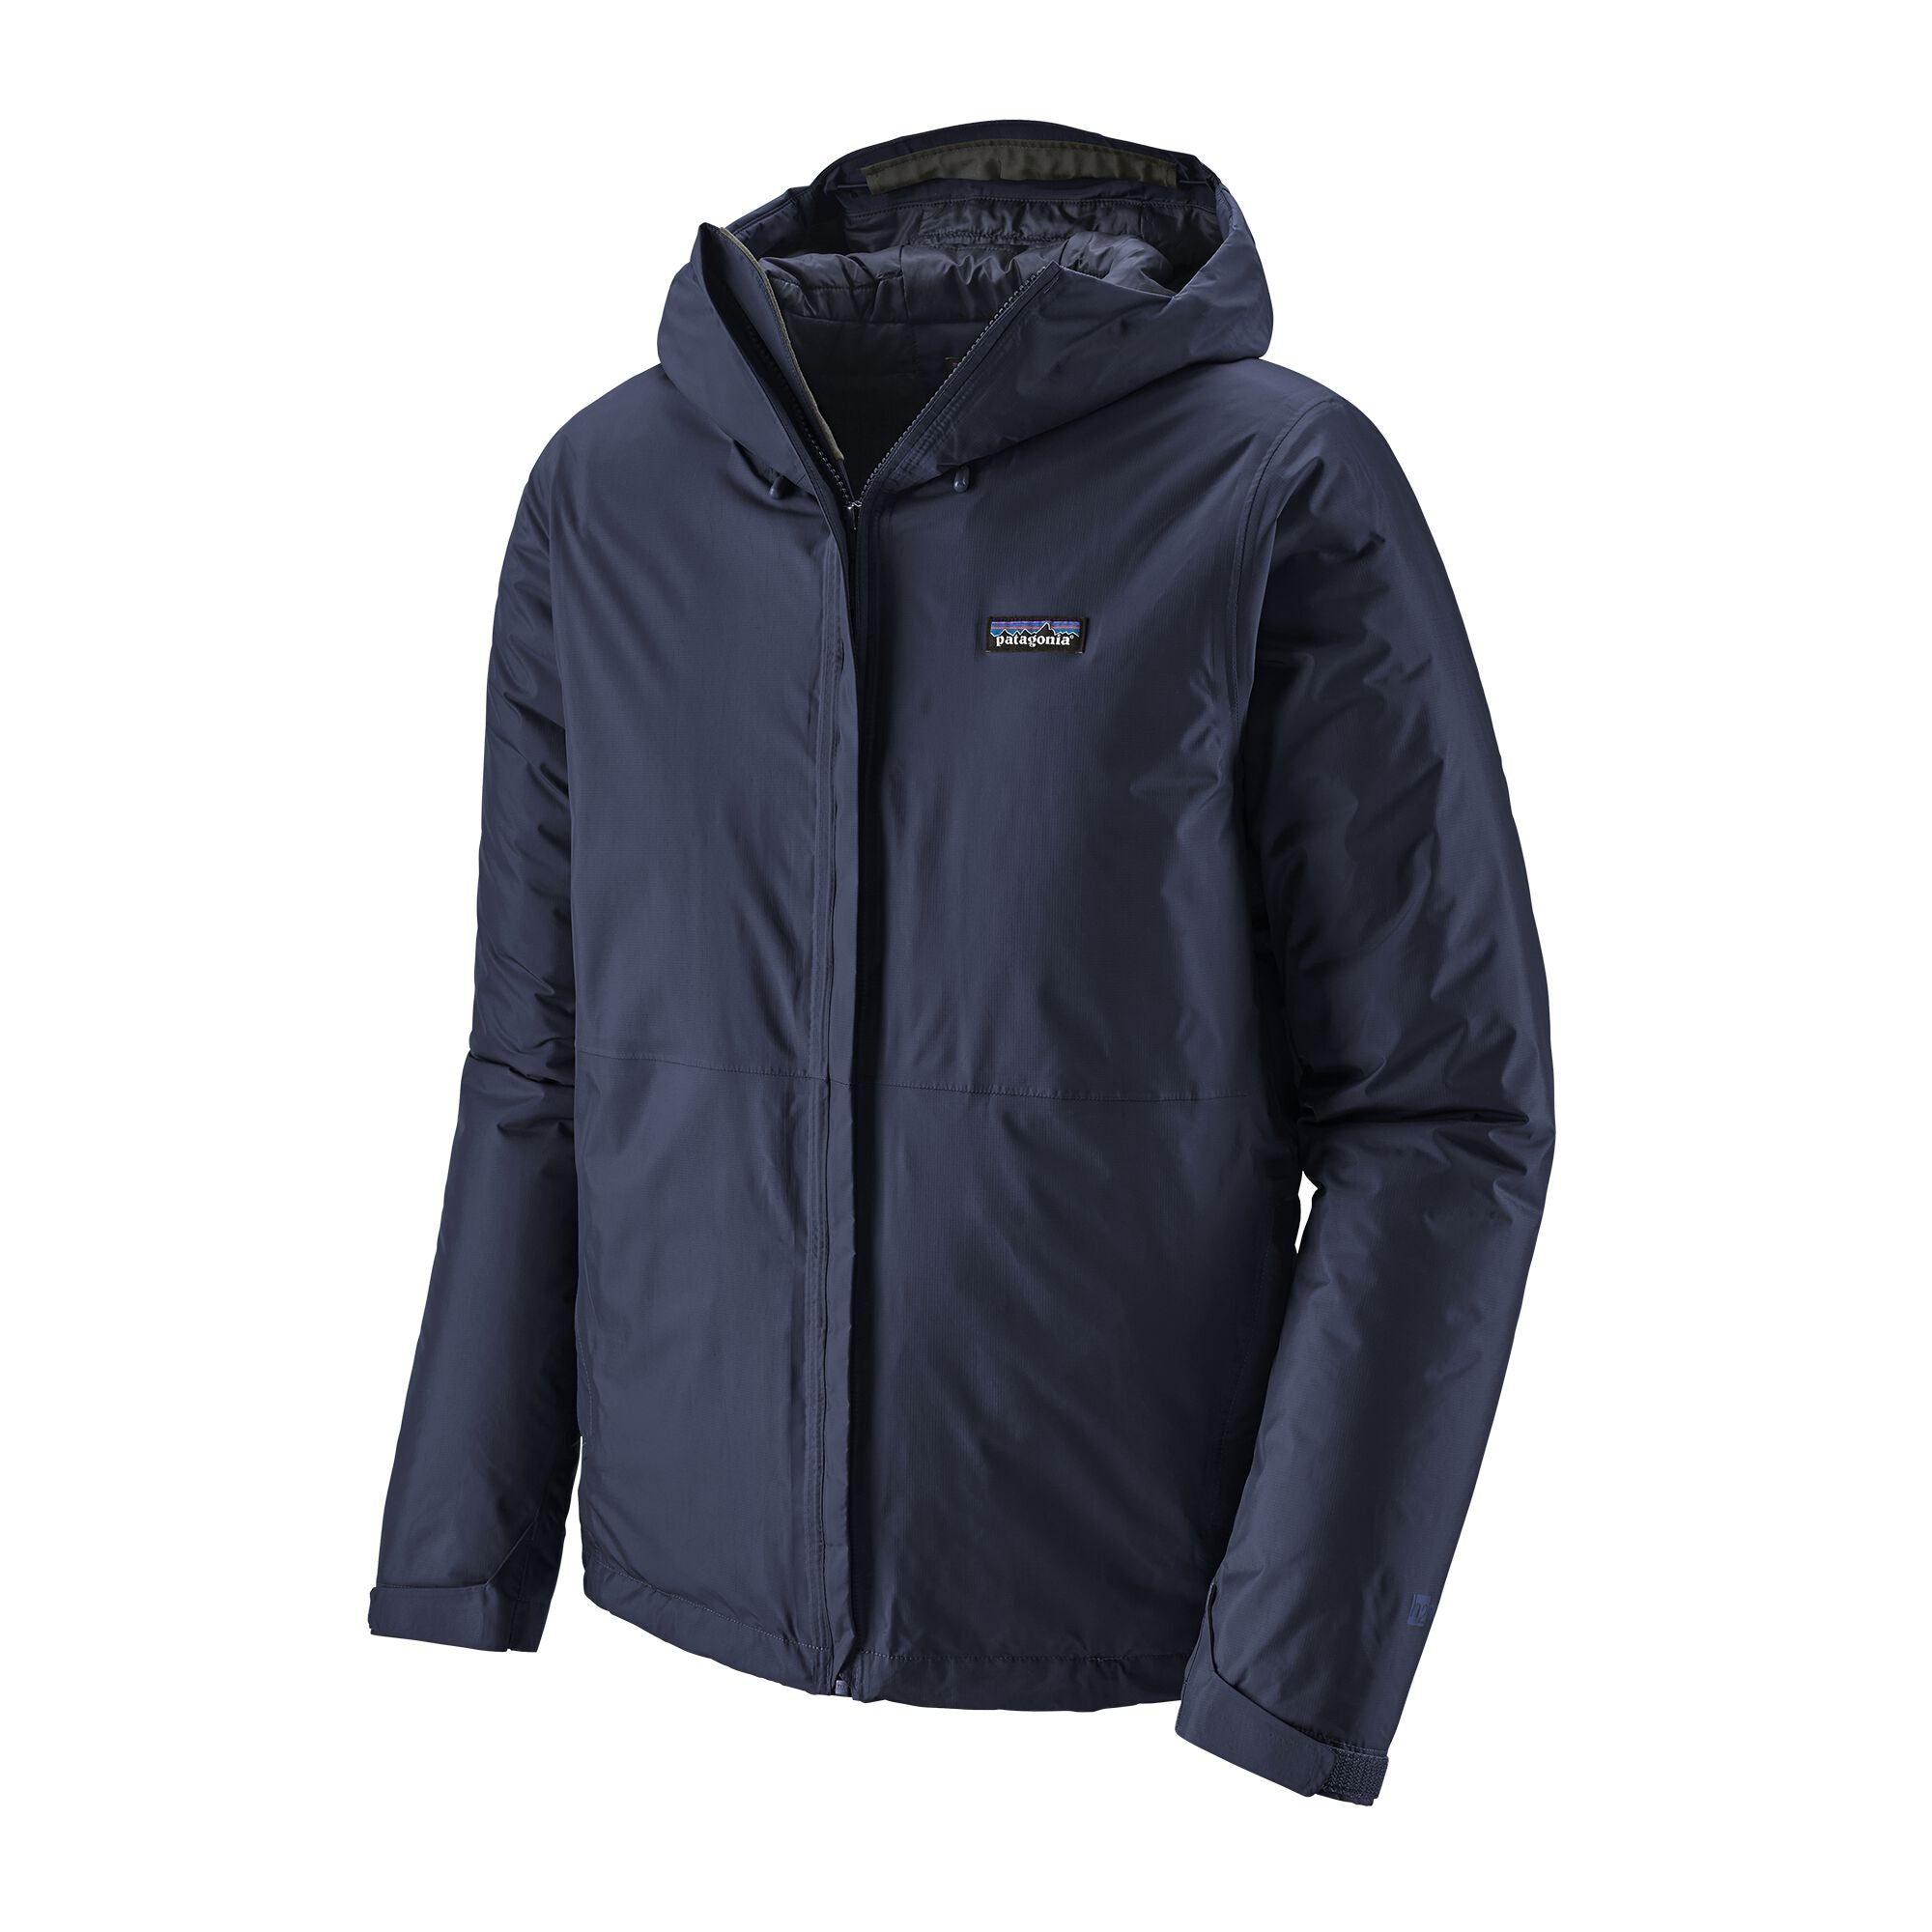 Chaqueta Impermeable Hombre Insulated Torrentshell Jacket Azul Patagonia